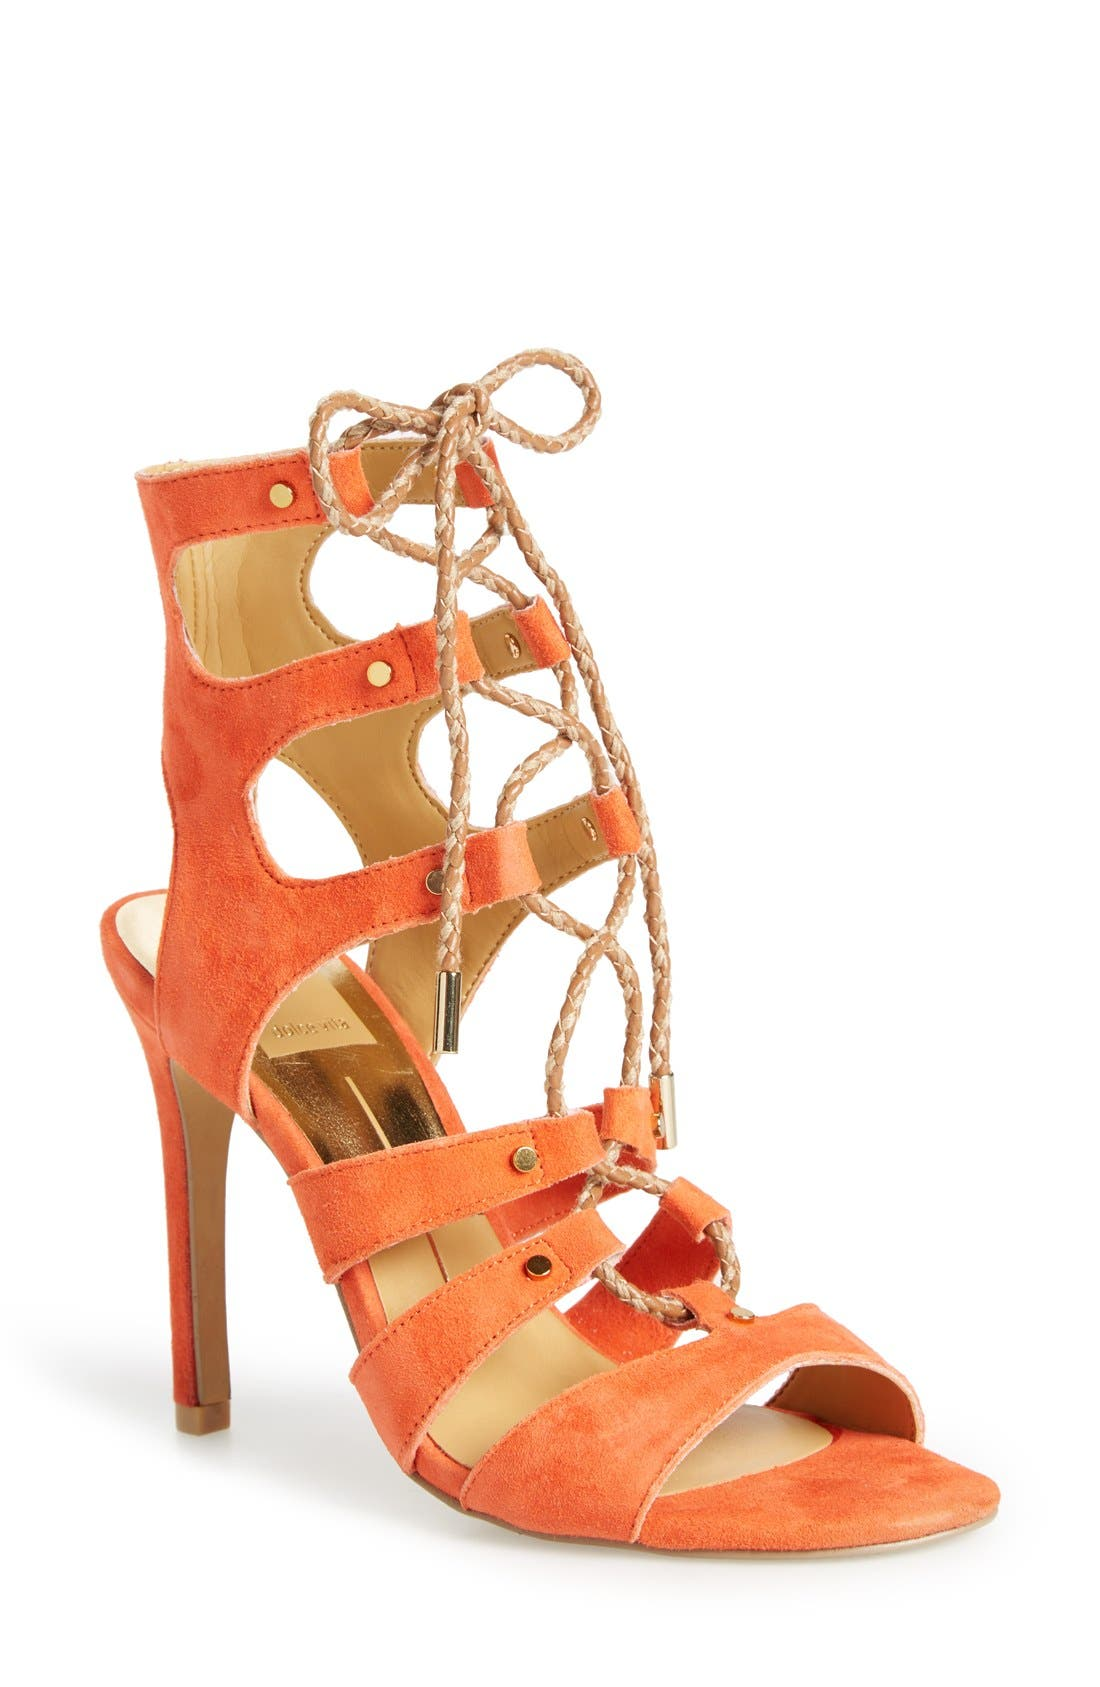 Alternate Image 1 Selected - Dolce Vita 'Howie' Lace-Up Sandal (Women)